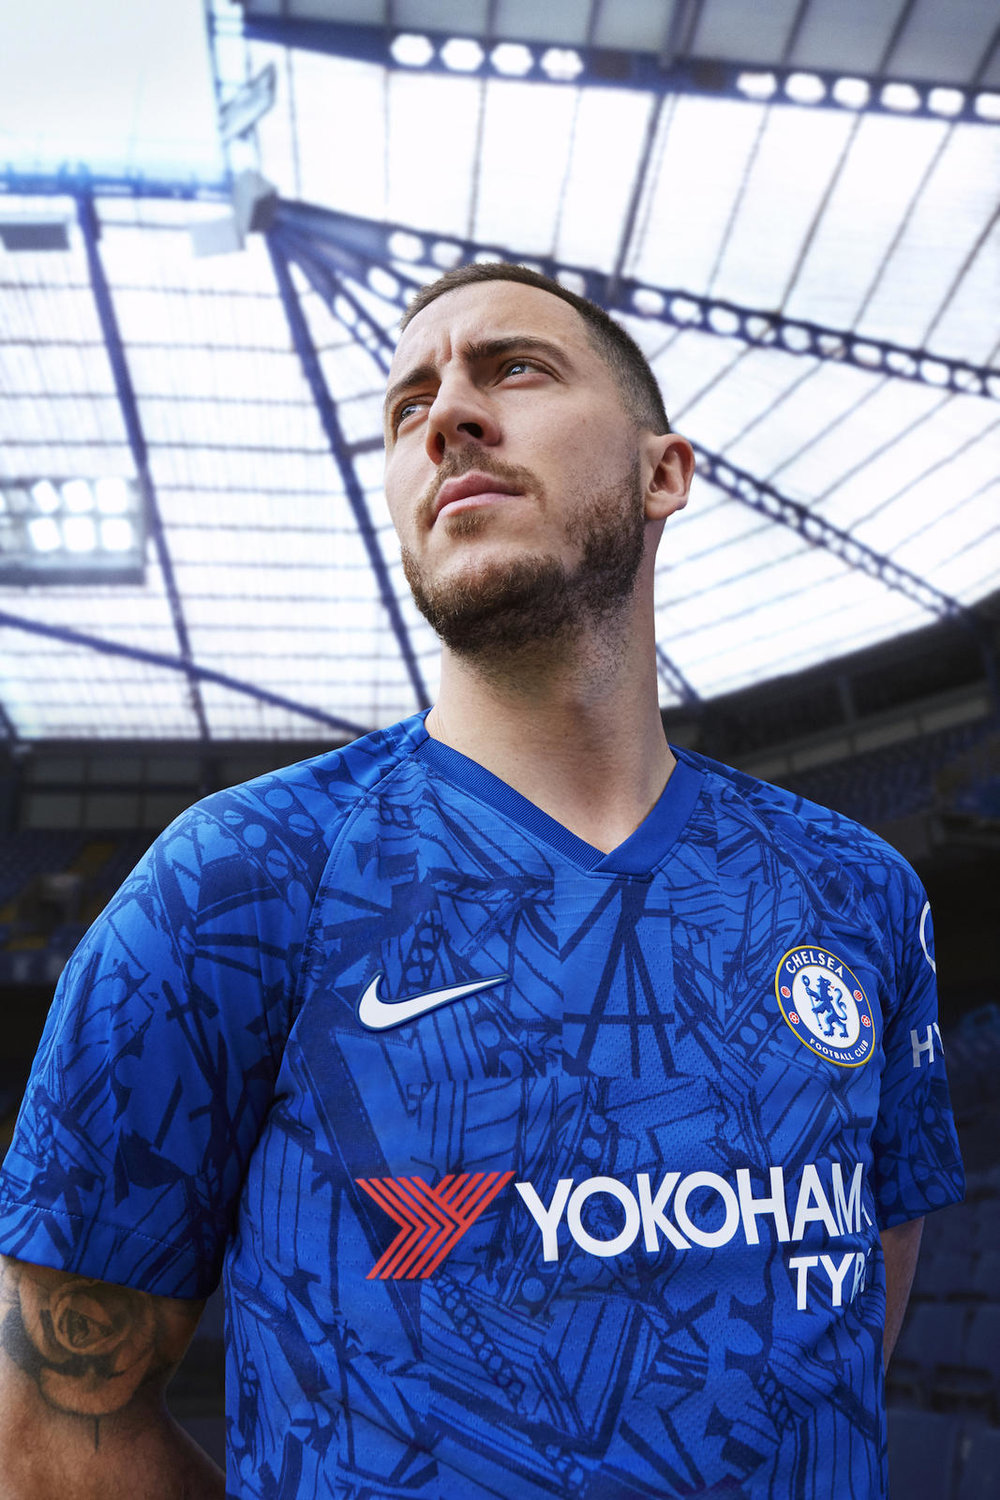 Nike_ChelseaFC_HomeKit_2019-20_4_native_1600.jpg